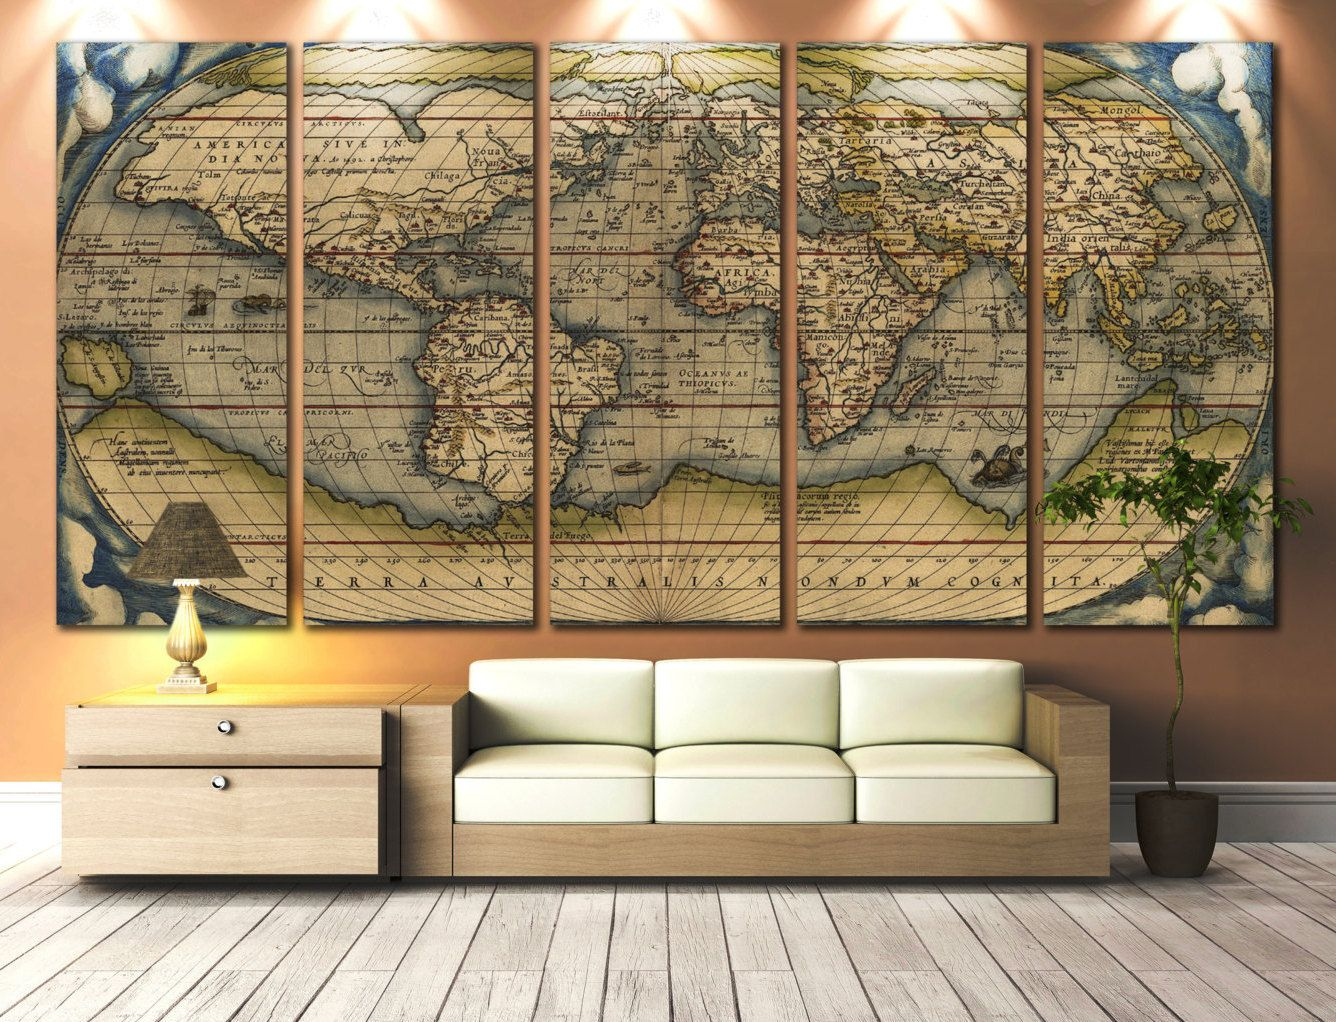 About this product   gt  WORLD MAP   ANTIQUE WORLD MAP   LARGE WORLD     About this product   gt  WORLD MAP   ANTIQUE WORLD MAP   LARGE WORLD MAPWe  use museum quality canvases to achieve archival grade wall art for your  home